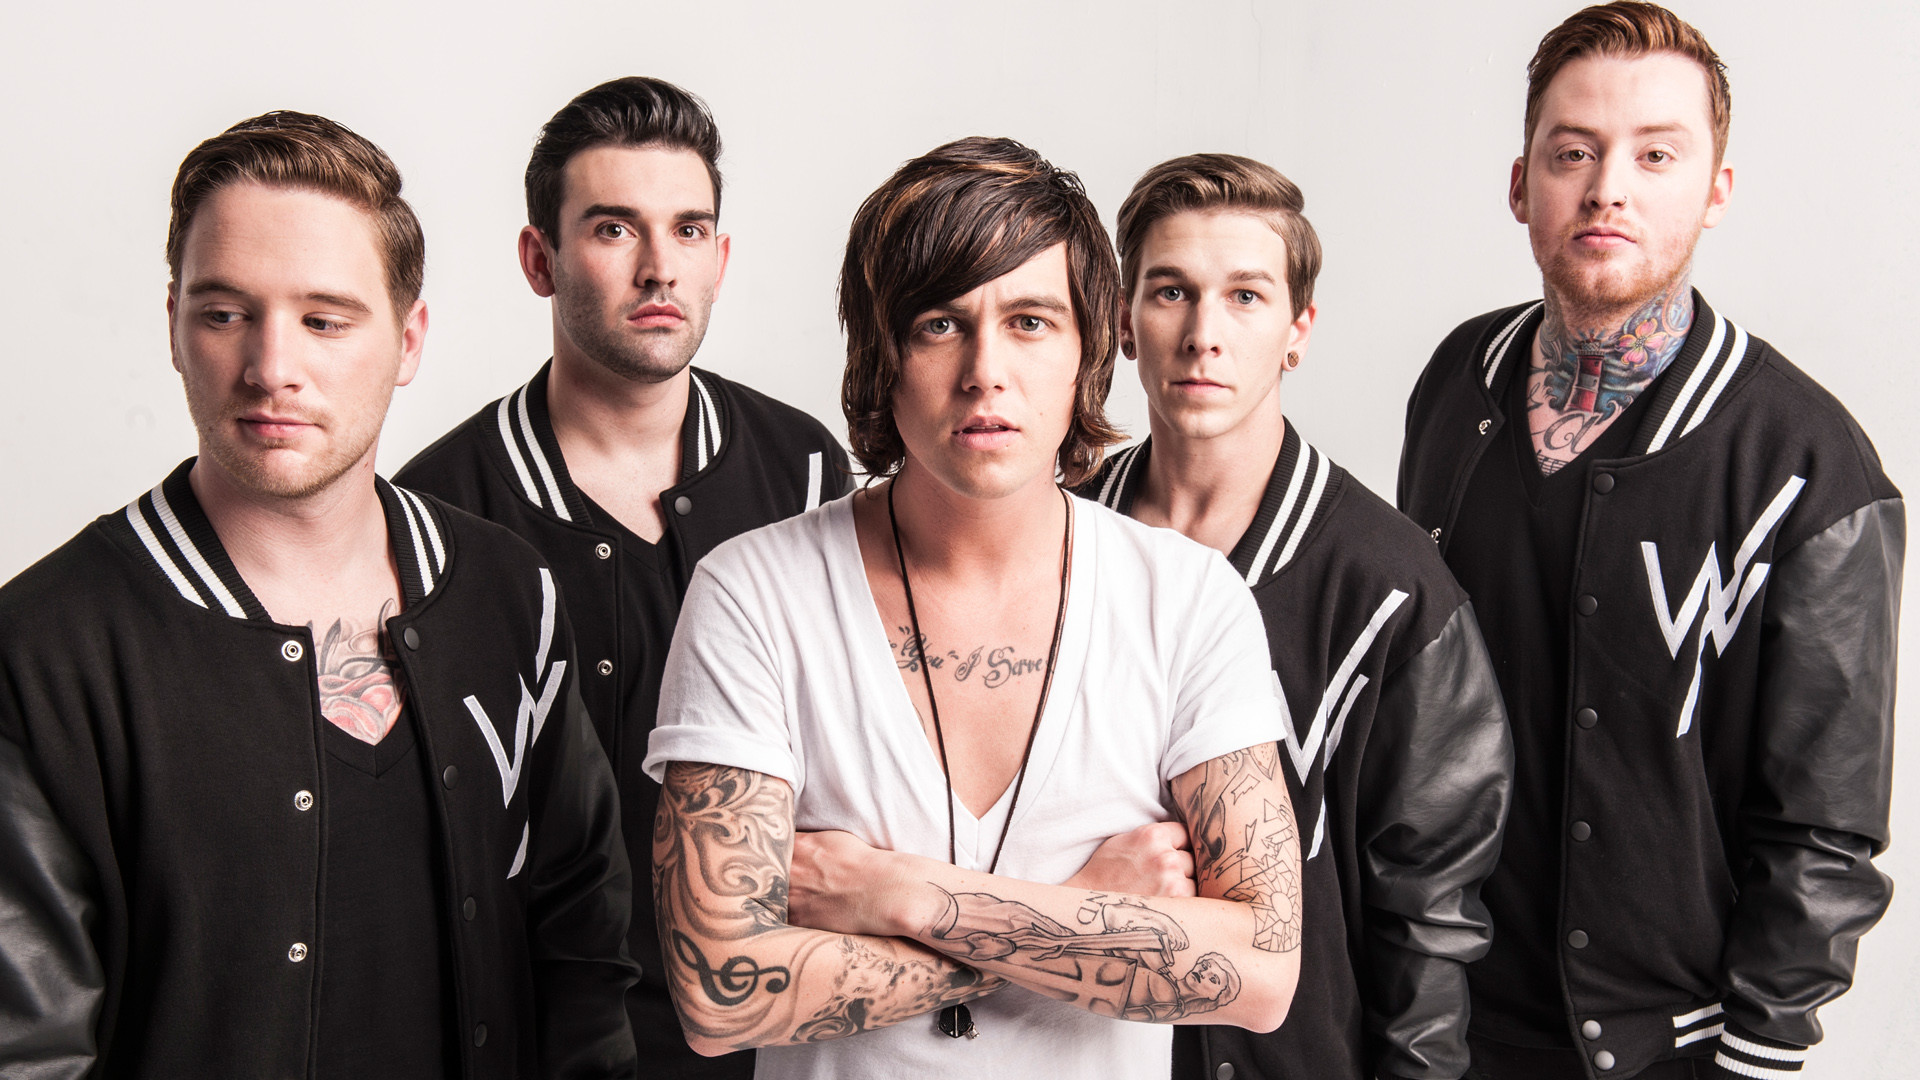 sleeping with sirens full album download